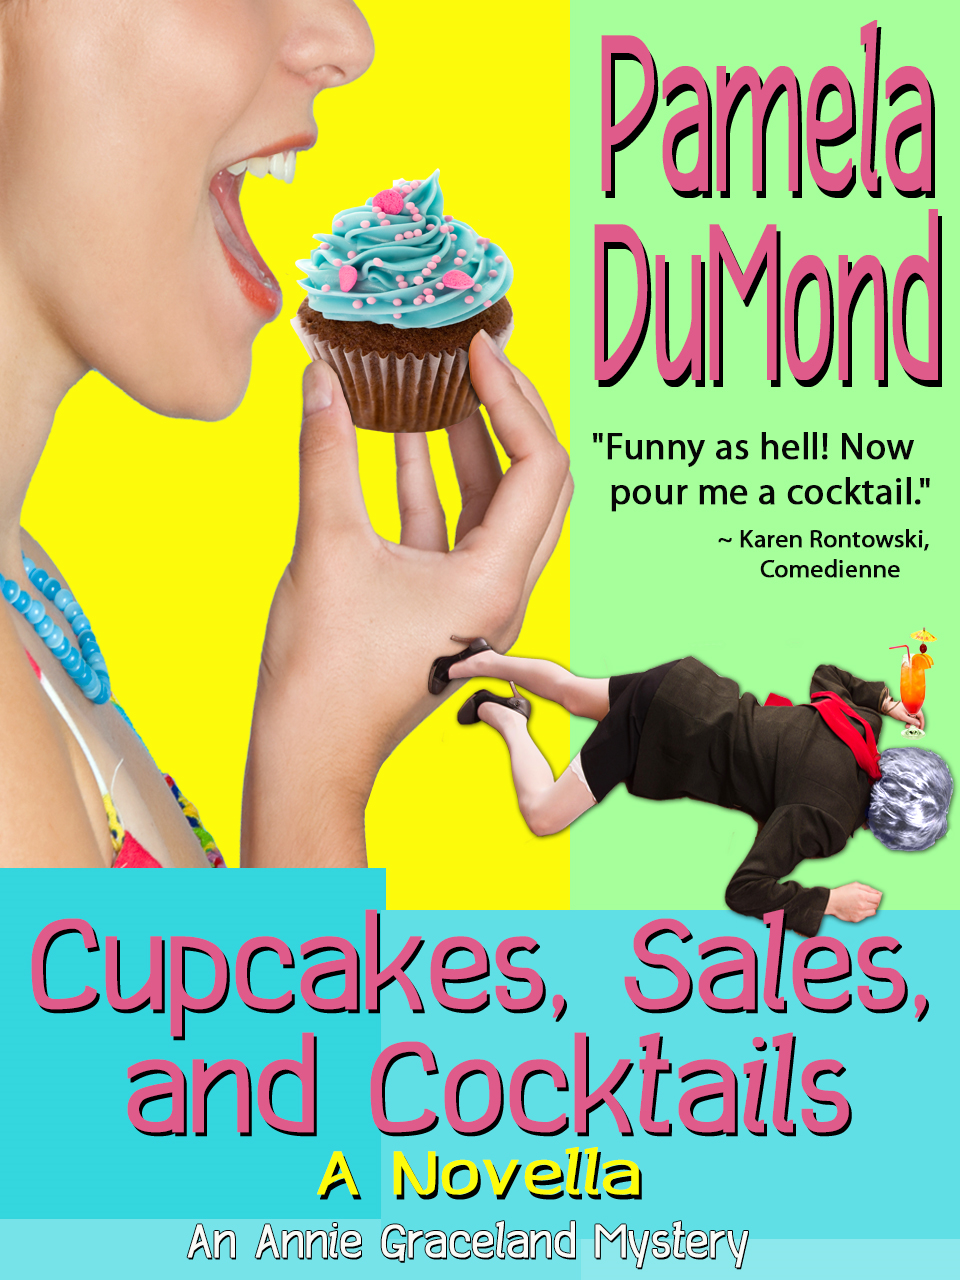 Cupcakes, Sales, and Cocktails - A Novella By: Pamela DuMond